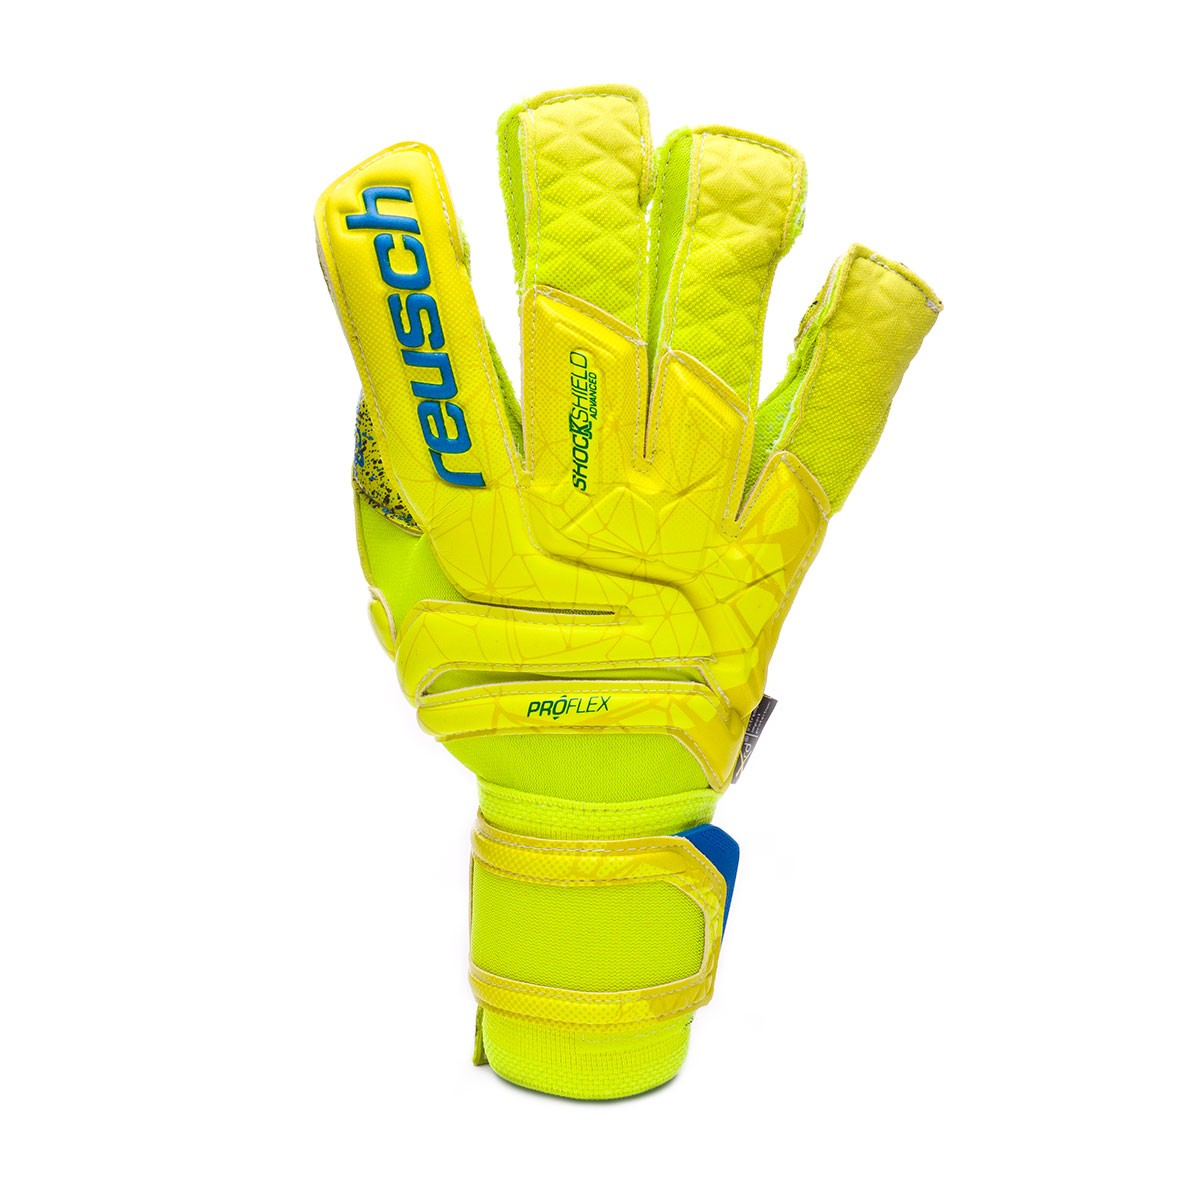 7141ca0ebf9 Glove Reusch Fit control Supreme G3 fusion Lime-Safety yellow - Football  store Fútbol Emotion